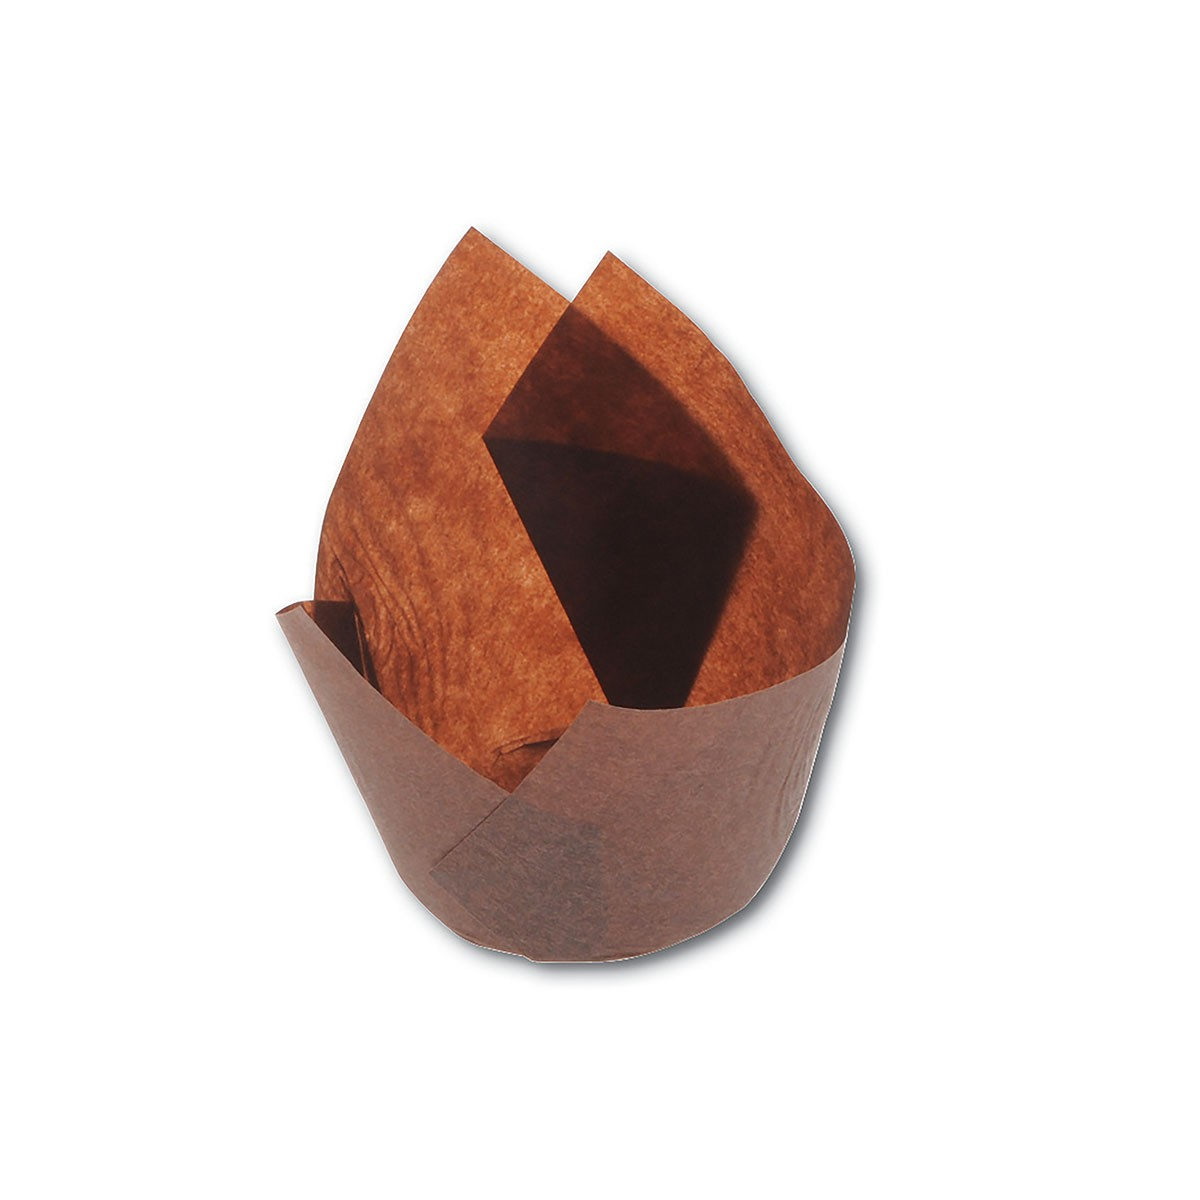 Grease-Proof Slip-Easy Paper Tulip Cups 50x60mm   2700pcs